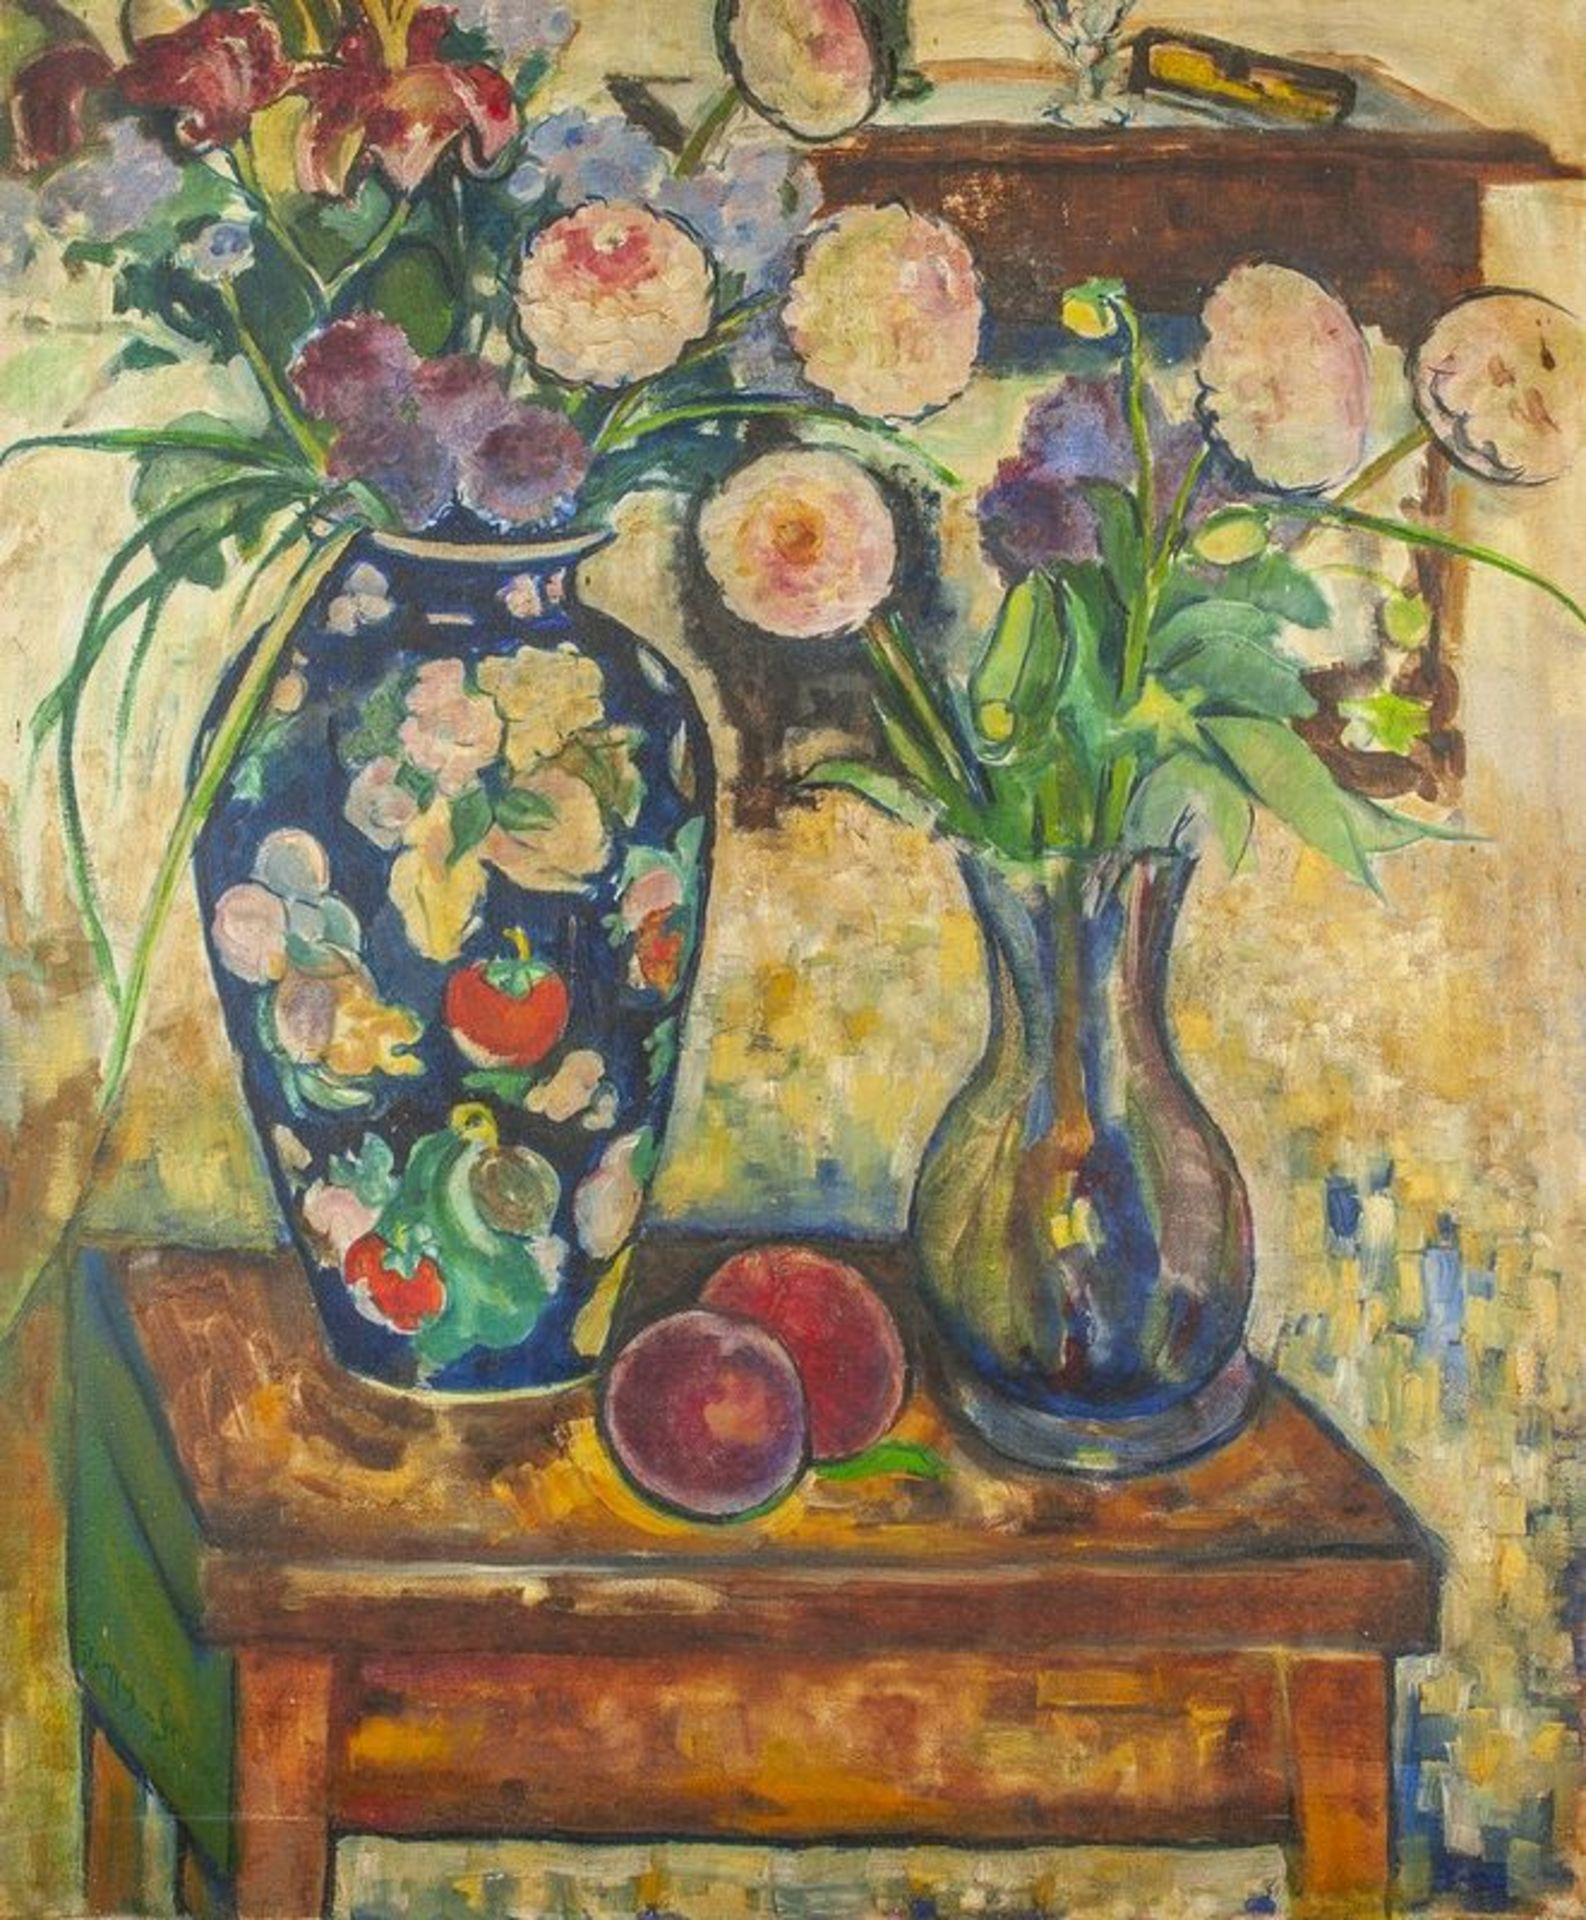 Los 610 - JEAN DREYFUS-STERN (1890-1980) Still life with flowers and peaches - Signed [...]